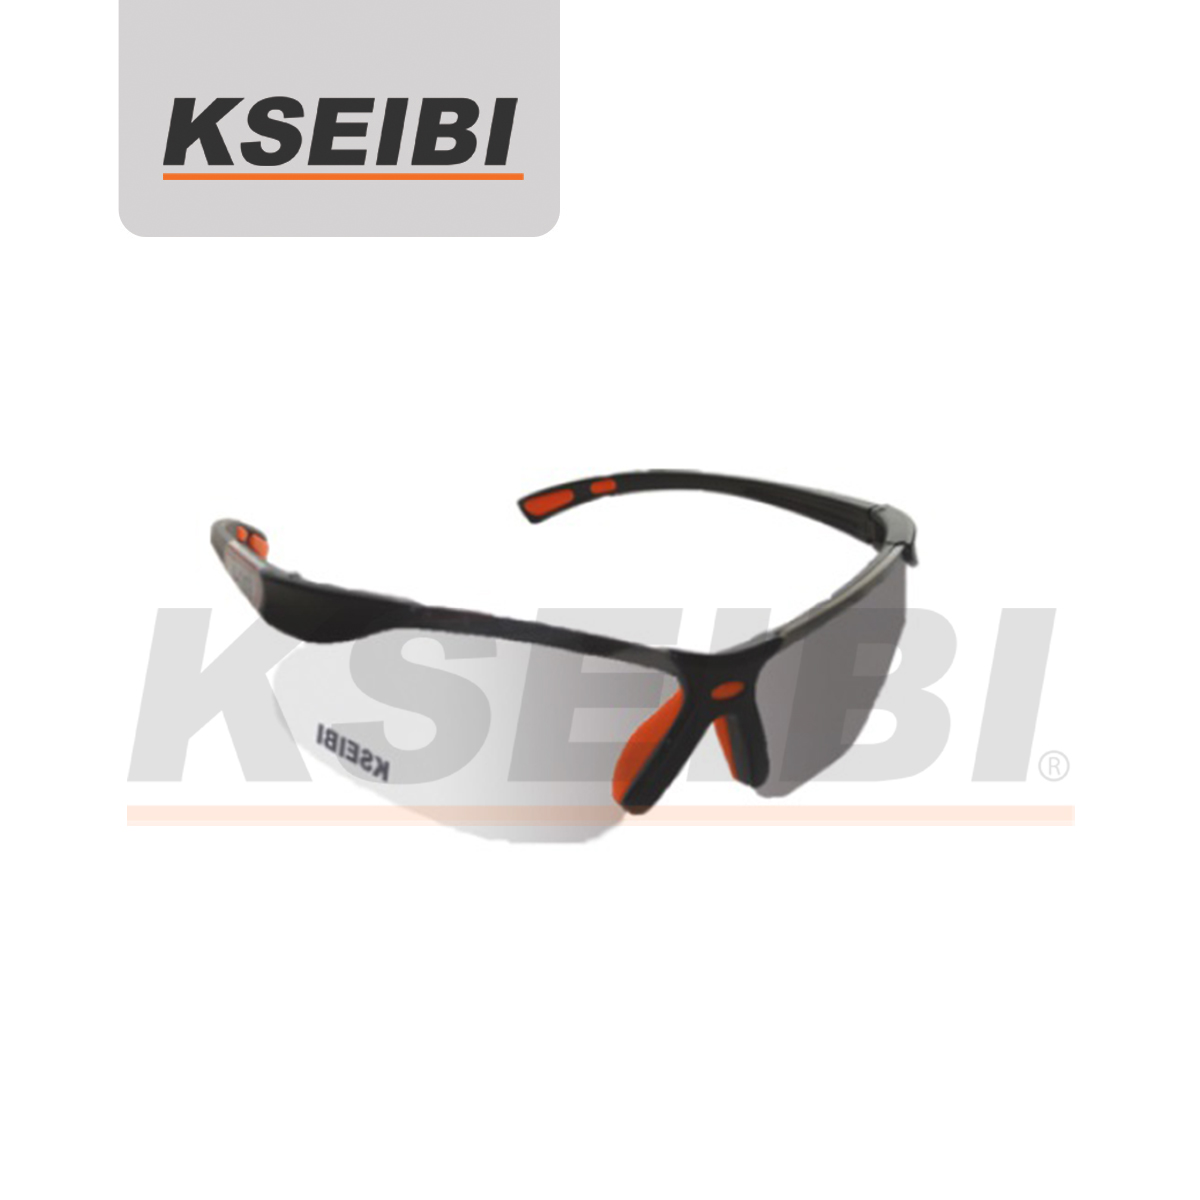 Construction Safety Glasses- KSEIBI